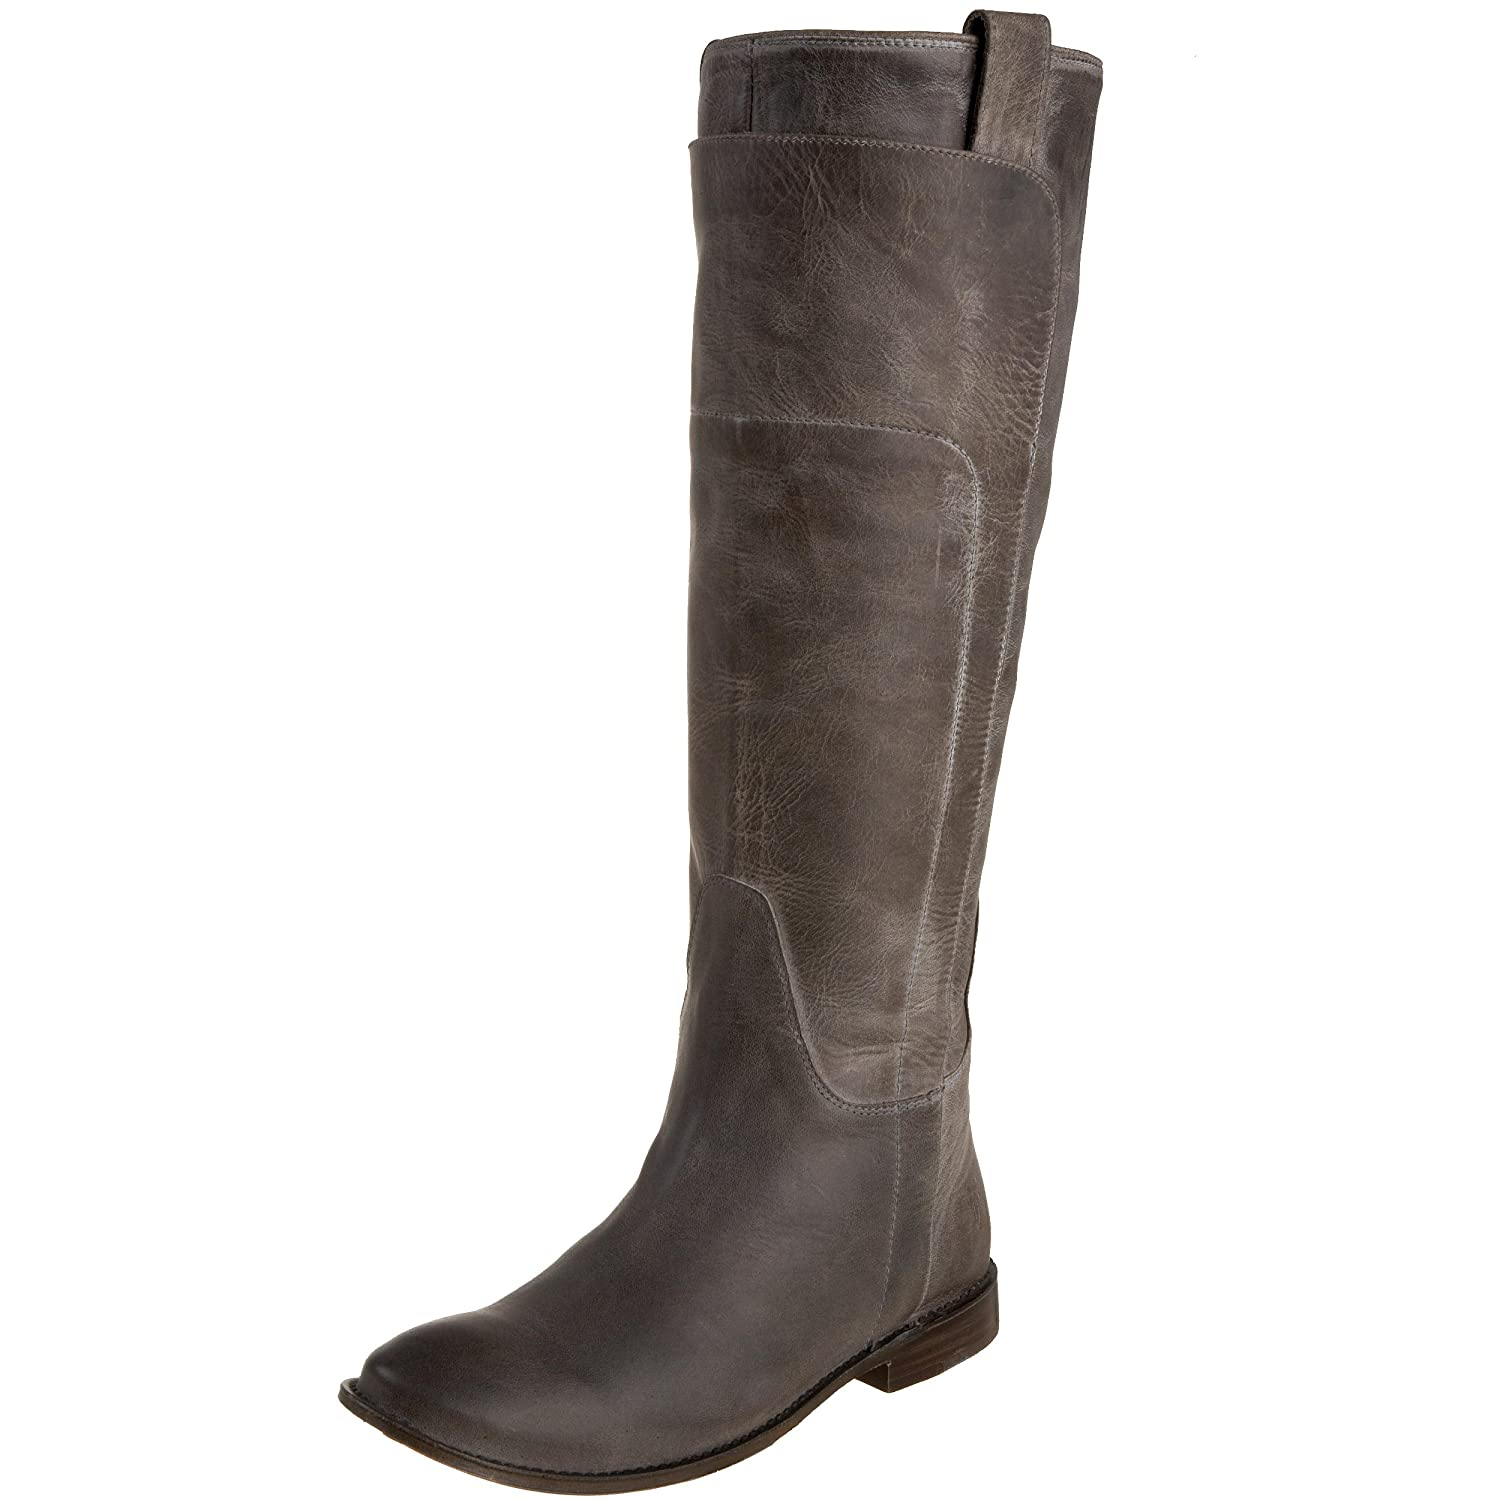 FRYE Women's Paige Tall Riding Boot B001VNBL0S 8 B(M) US|Grey Burnished Leather-77534